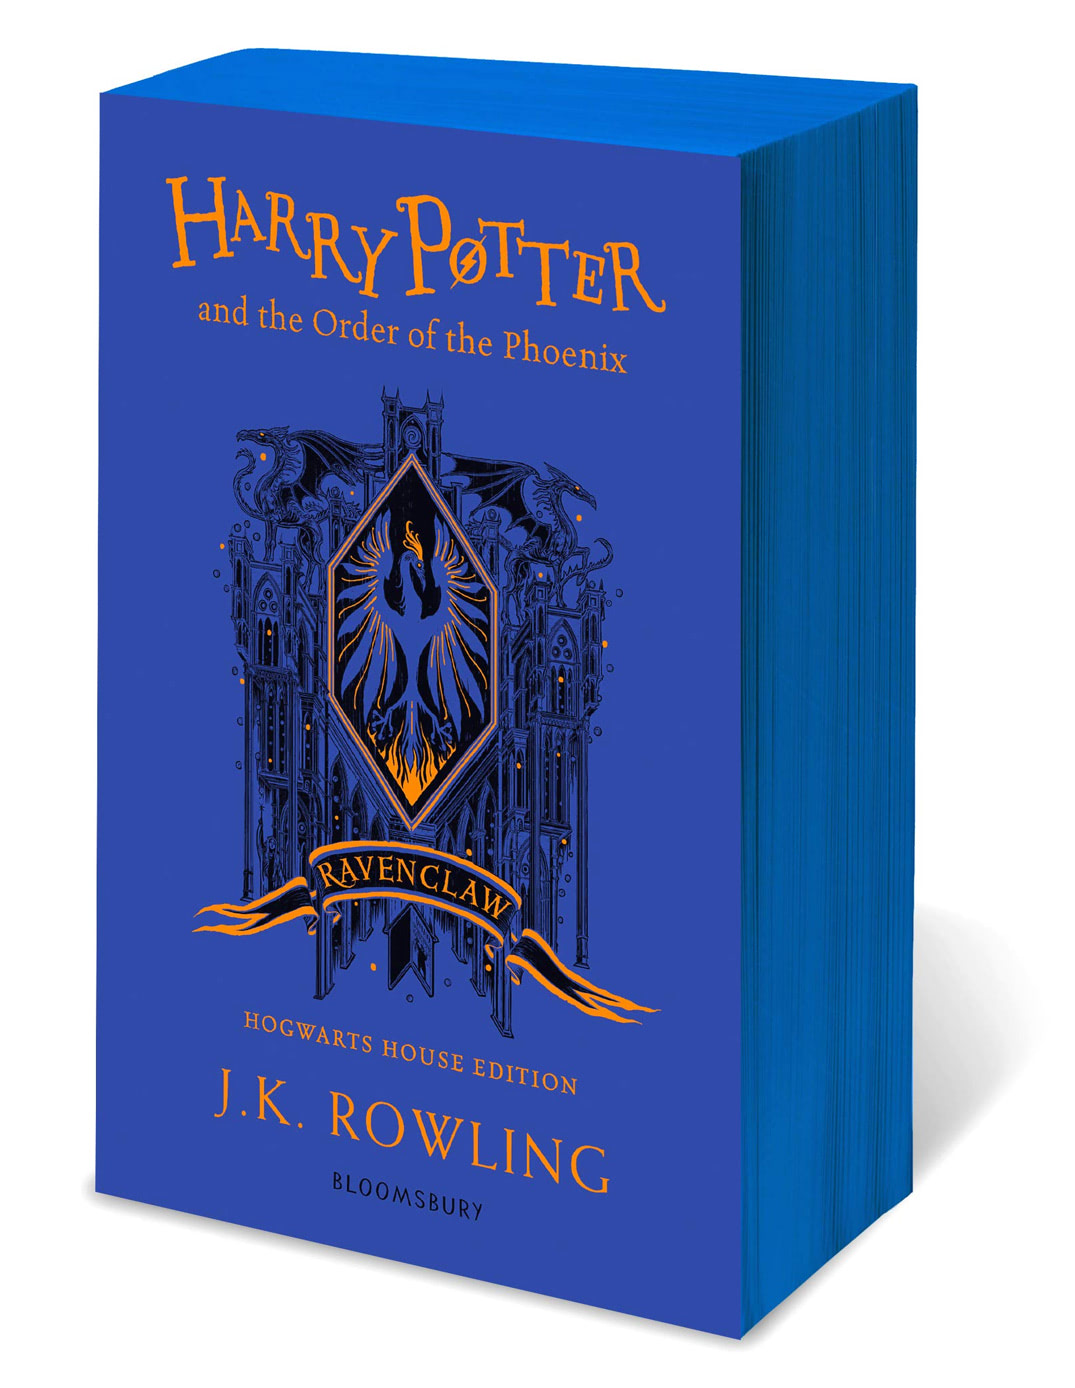 'Order of the Phoenix' house edition (Ravenclaw) (paperback)